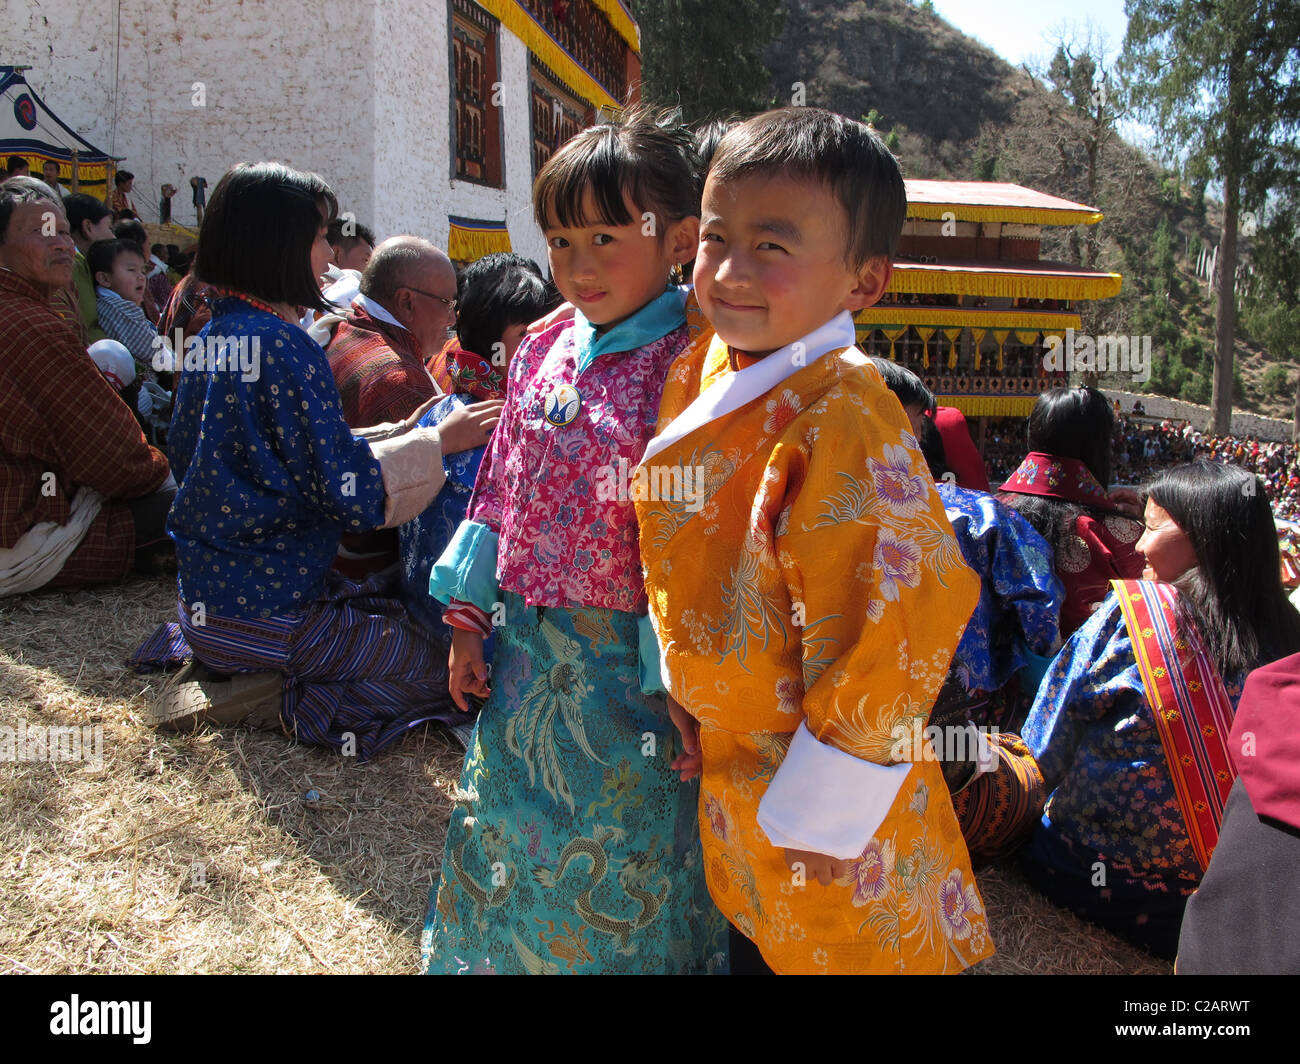 Happy children in colorful dresses during the Paro festival, West Bhutan - Stock Image